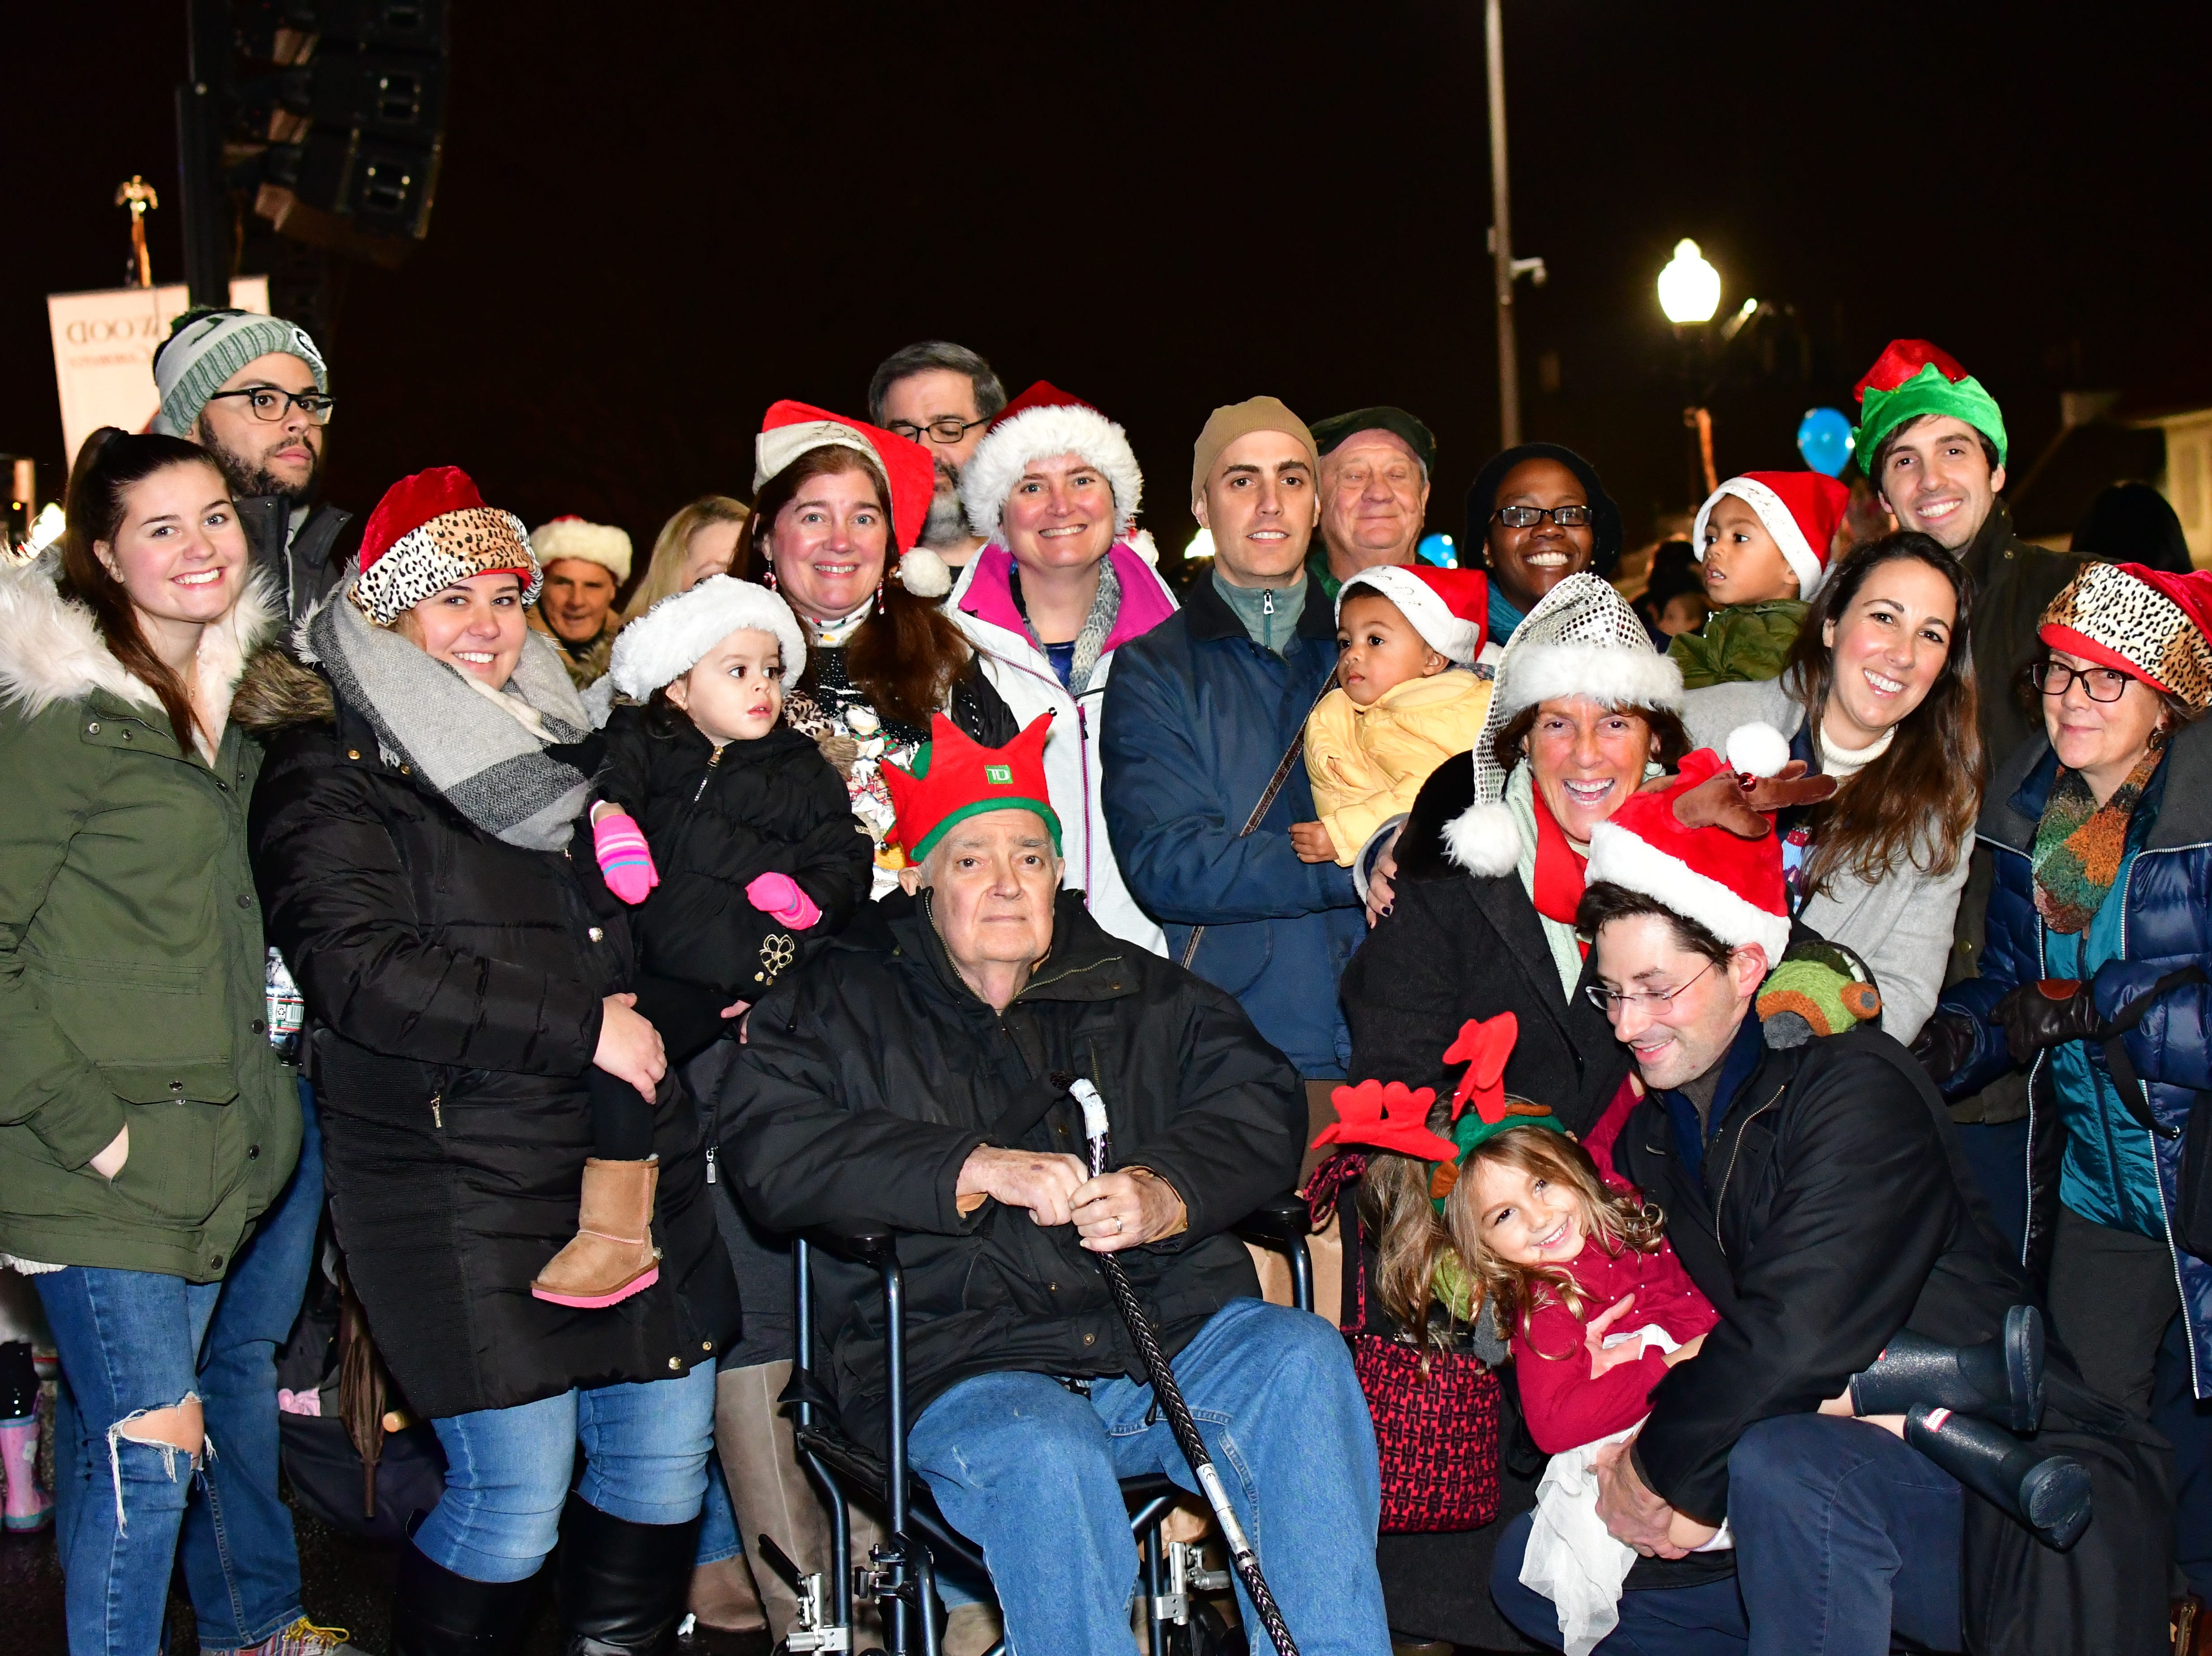 Justine Clinch Kaufman, far right, jacket. To her left is Janel Clinch, the tree dedicated to her husband Carleton Clinch who passed.  Holiday festivities along East Ridgewood Avenue in Ridgewood on Nov. 30.